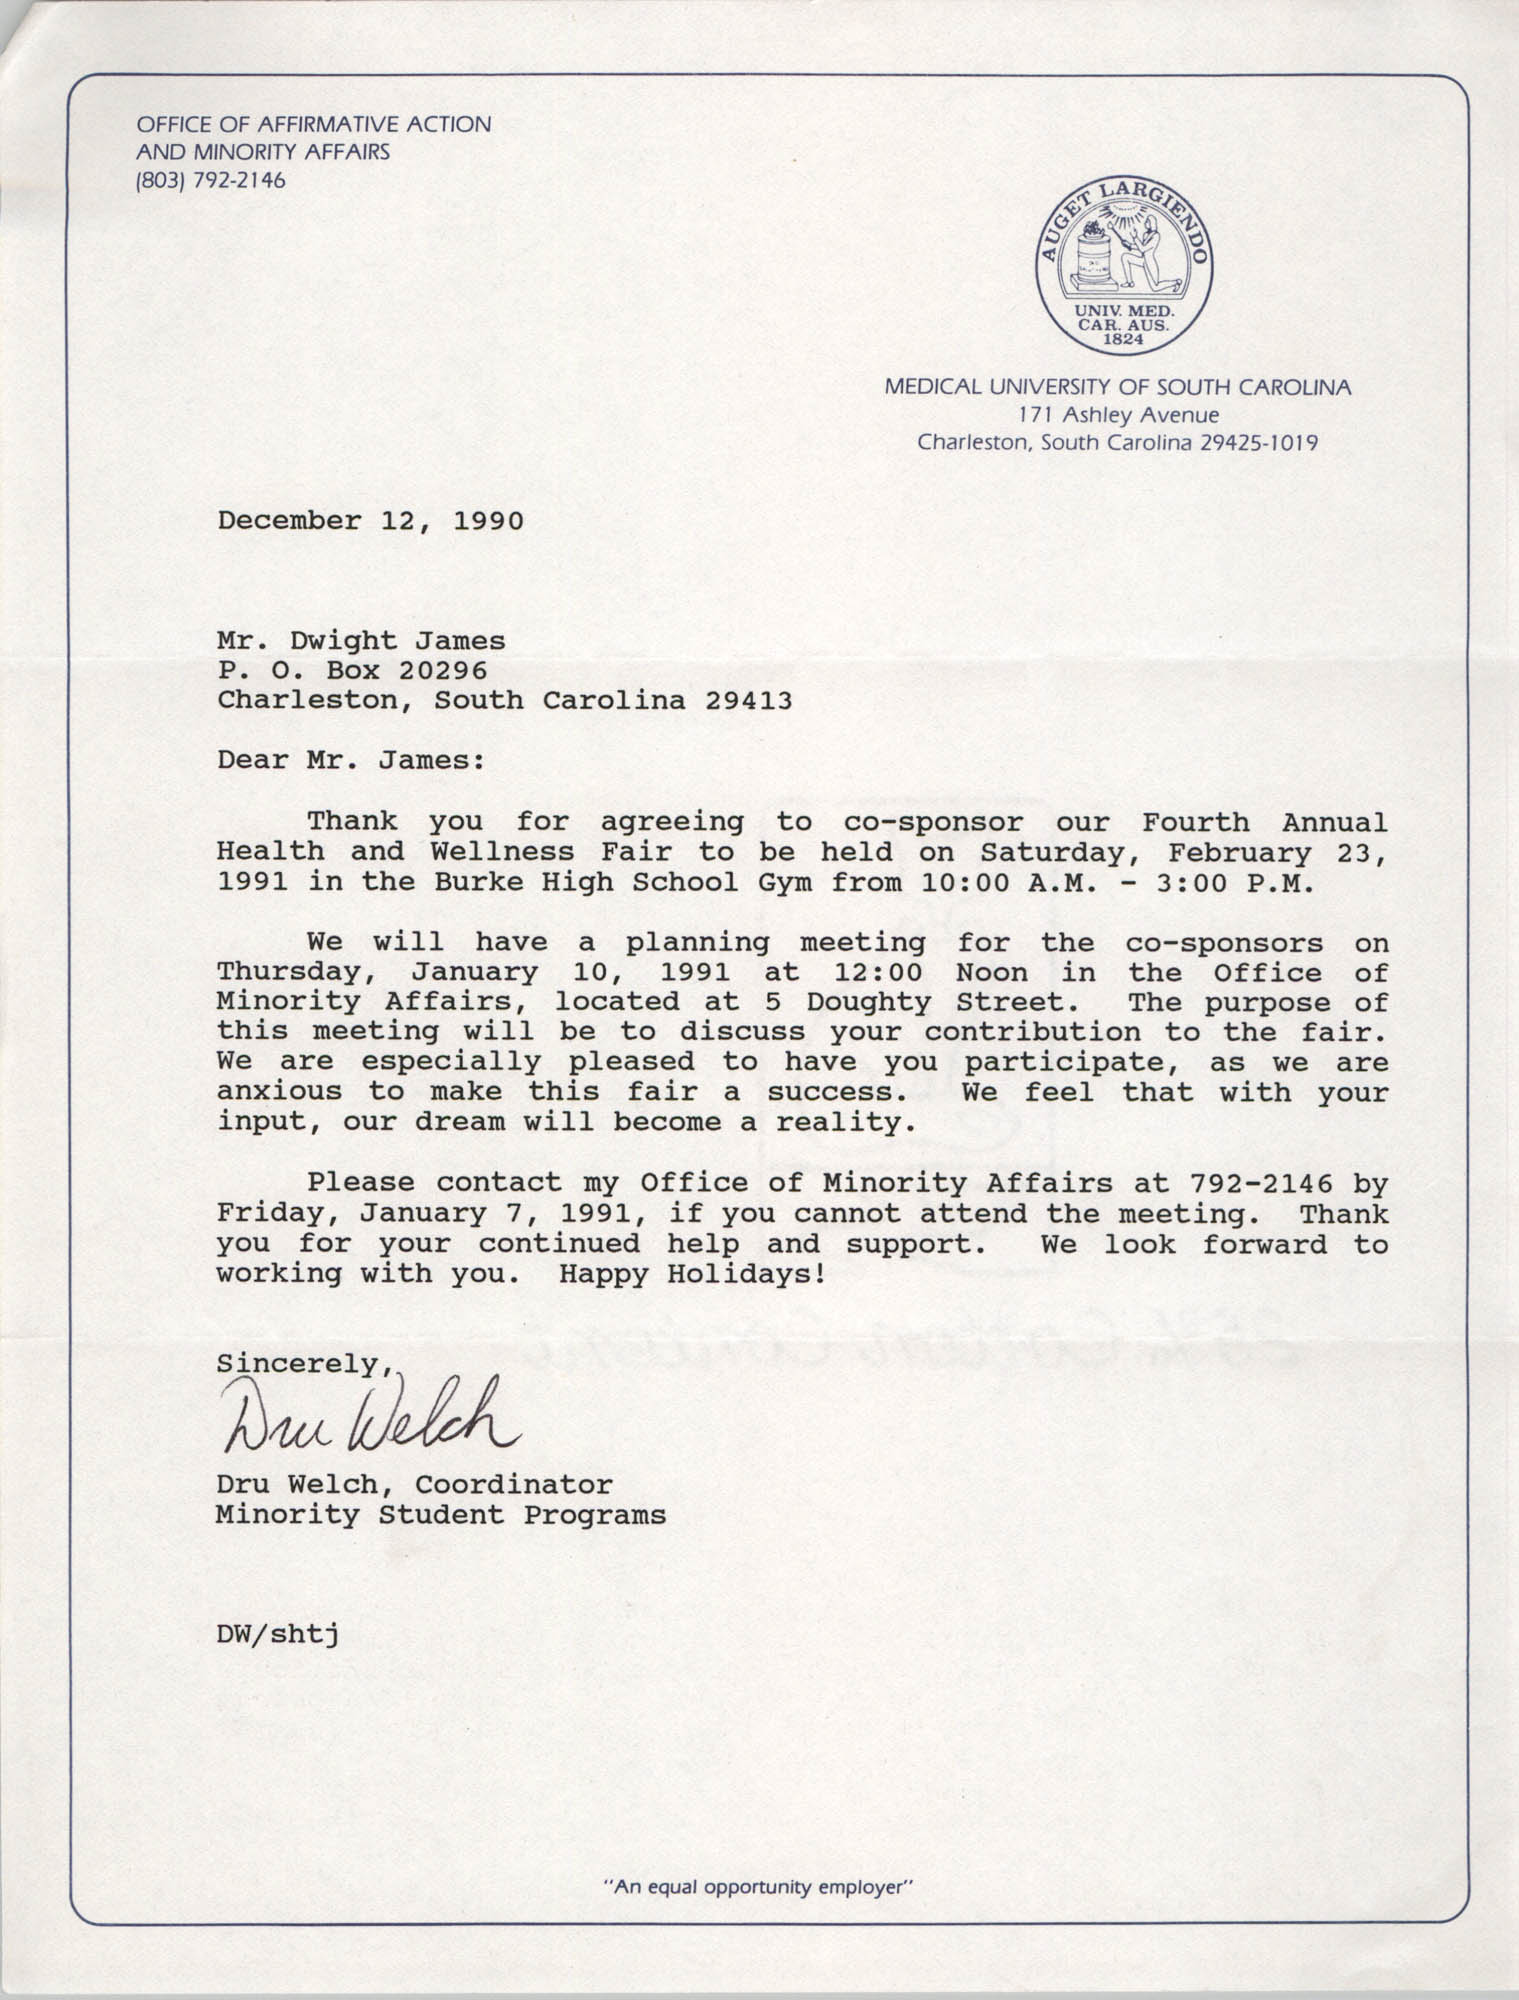 Letter from Dru Welch to Dwight James, December 12, 1990